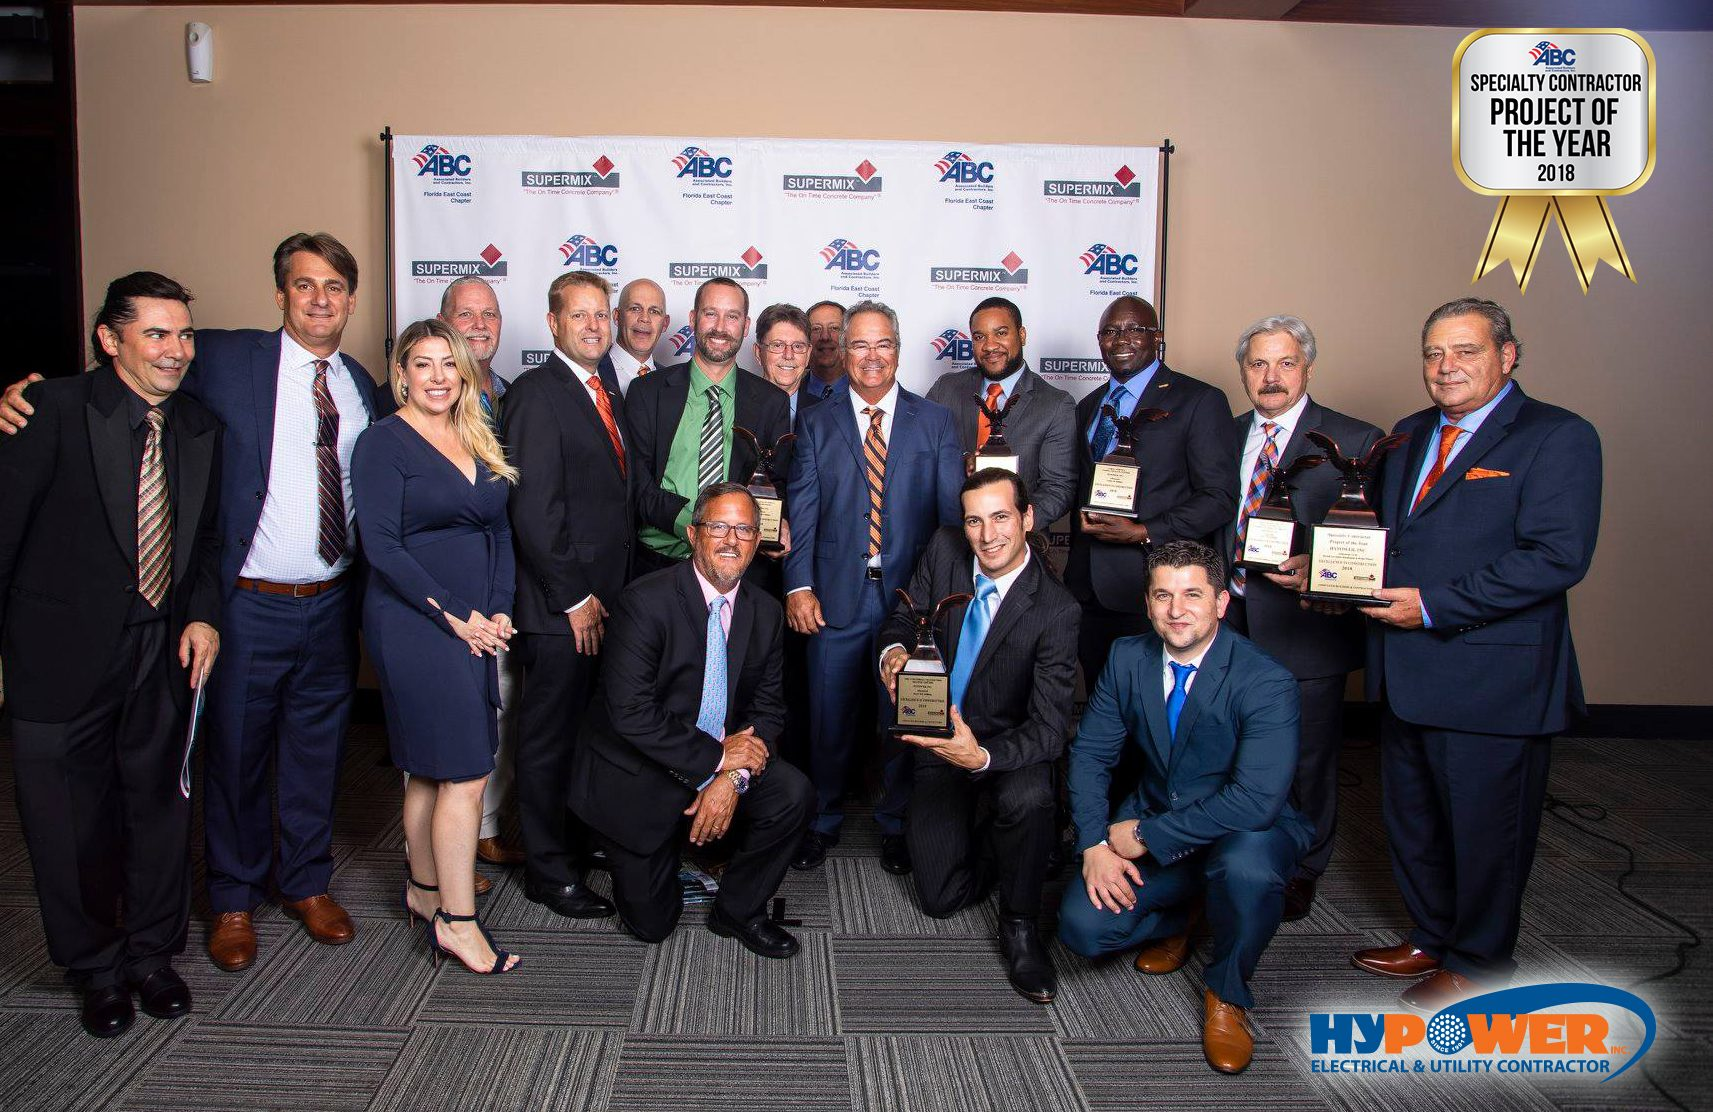 Hypower Wins Specialty Contractor Project of the Year and 5